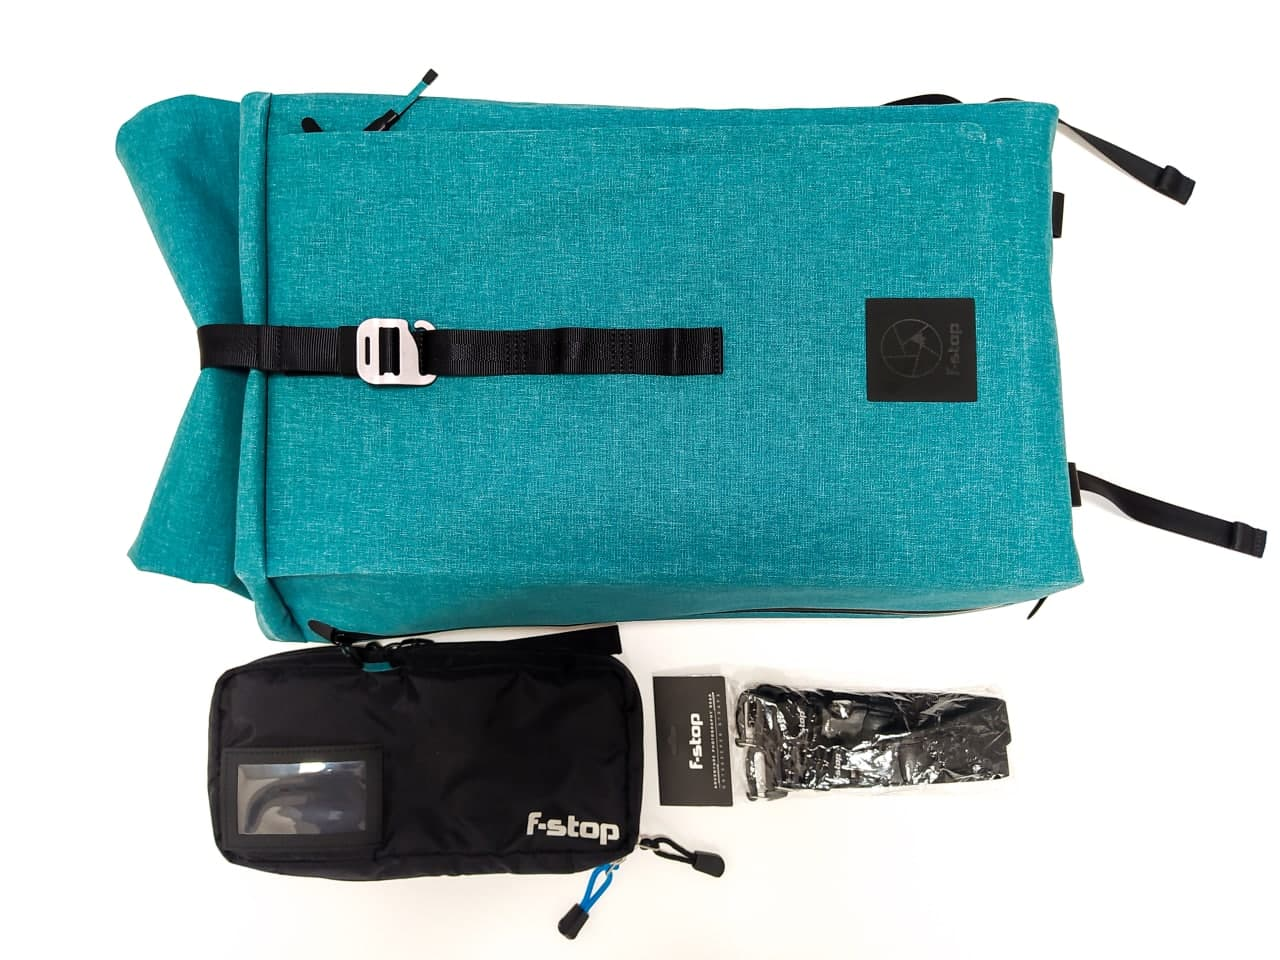 Review Dyota 20L Roll-Top Camera Pack f-stop photographic backpack